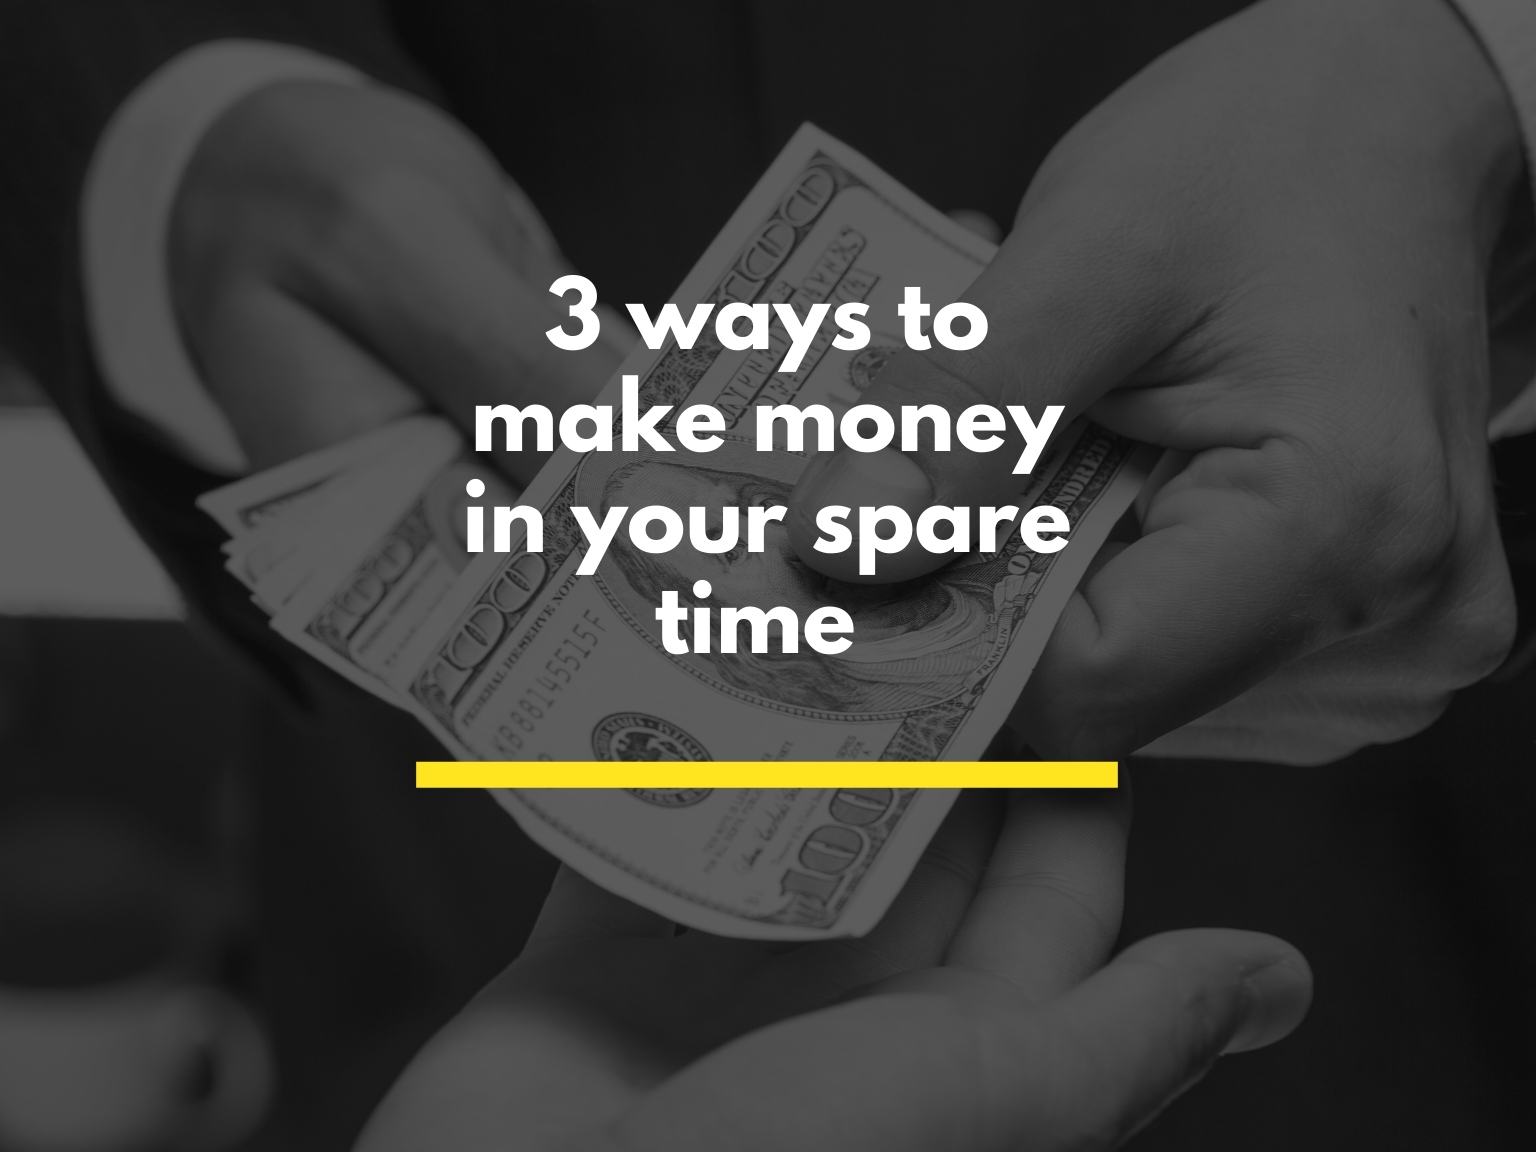 3 ways to make money in your spare time